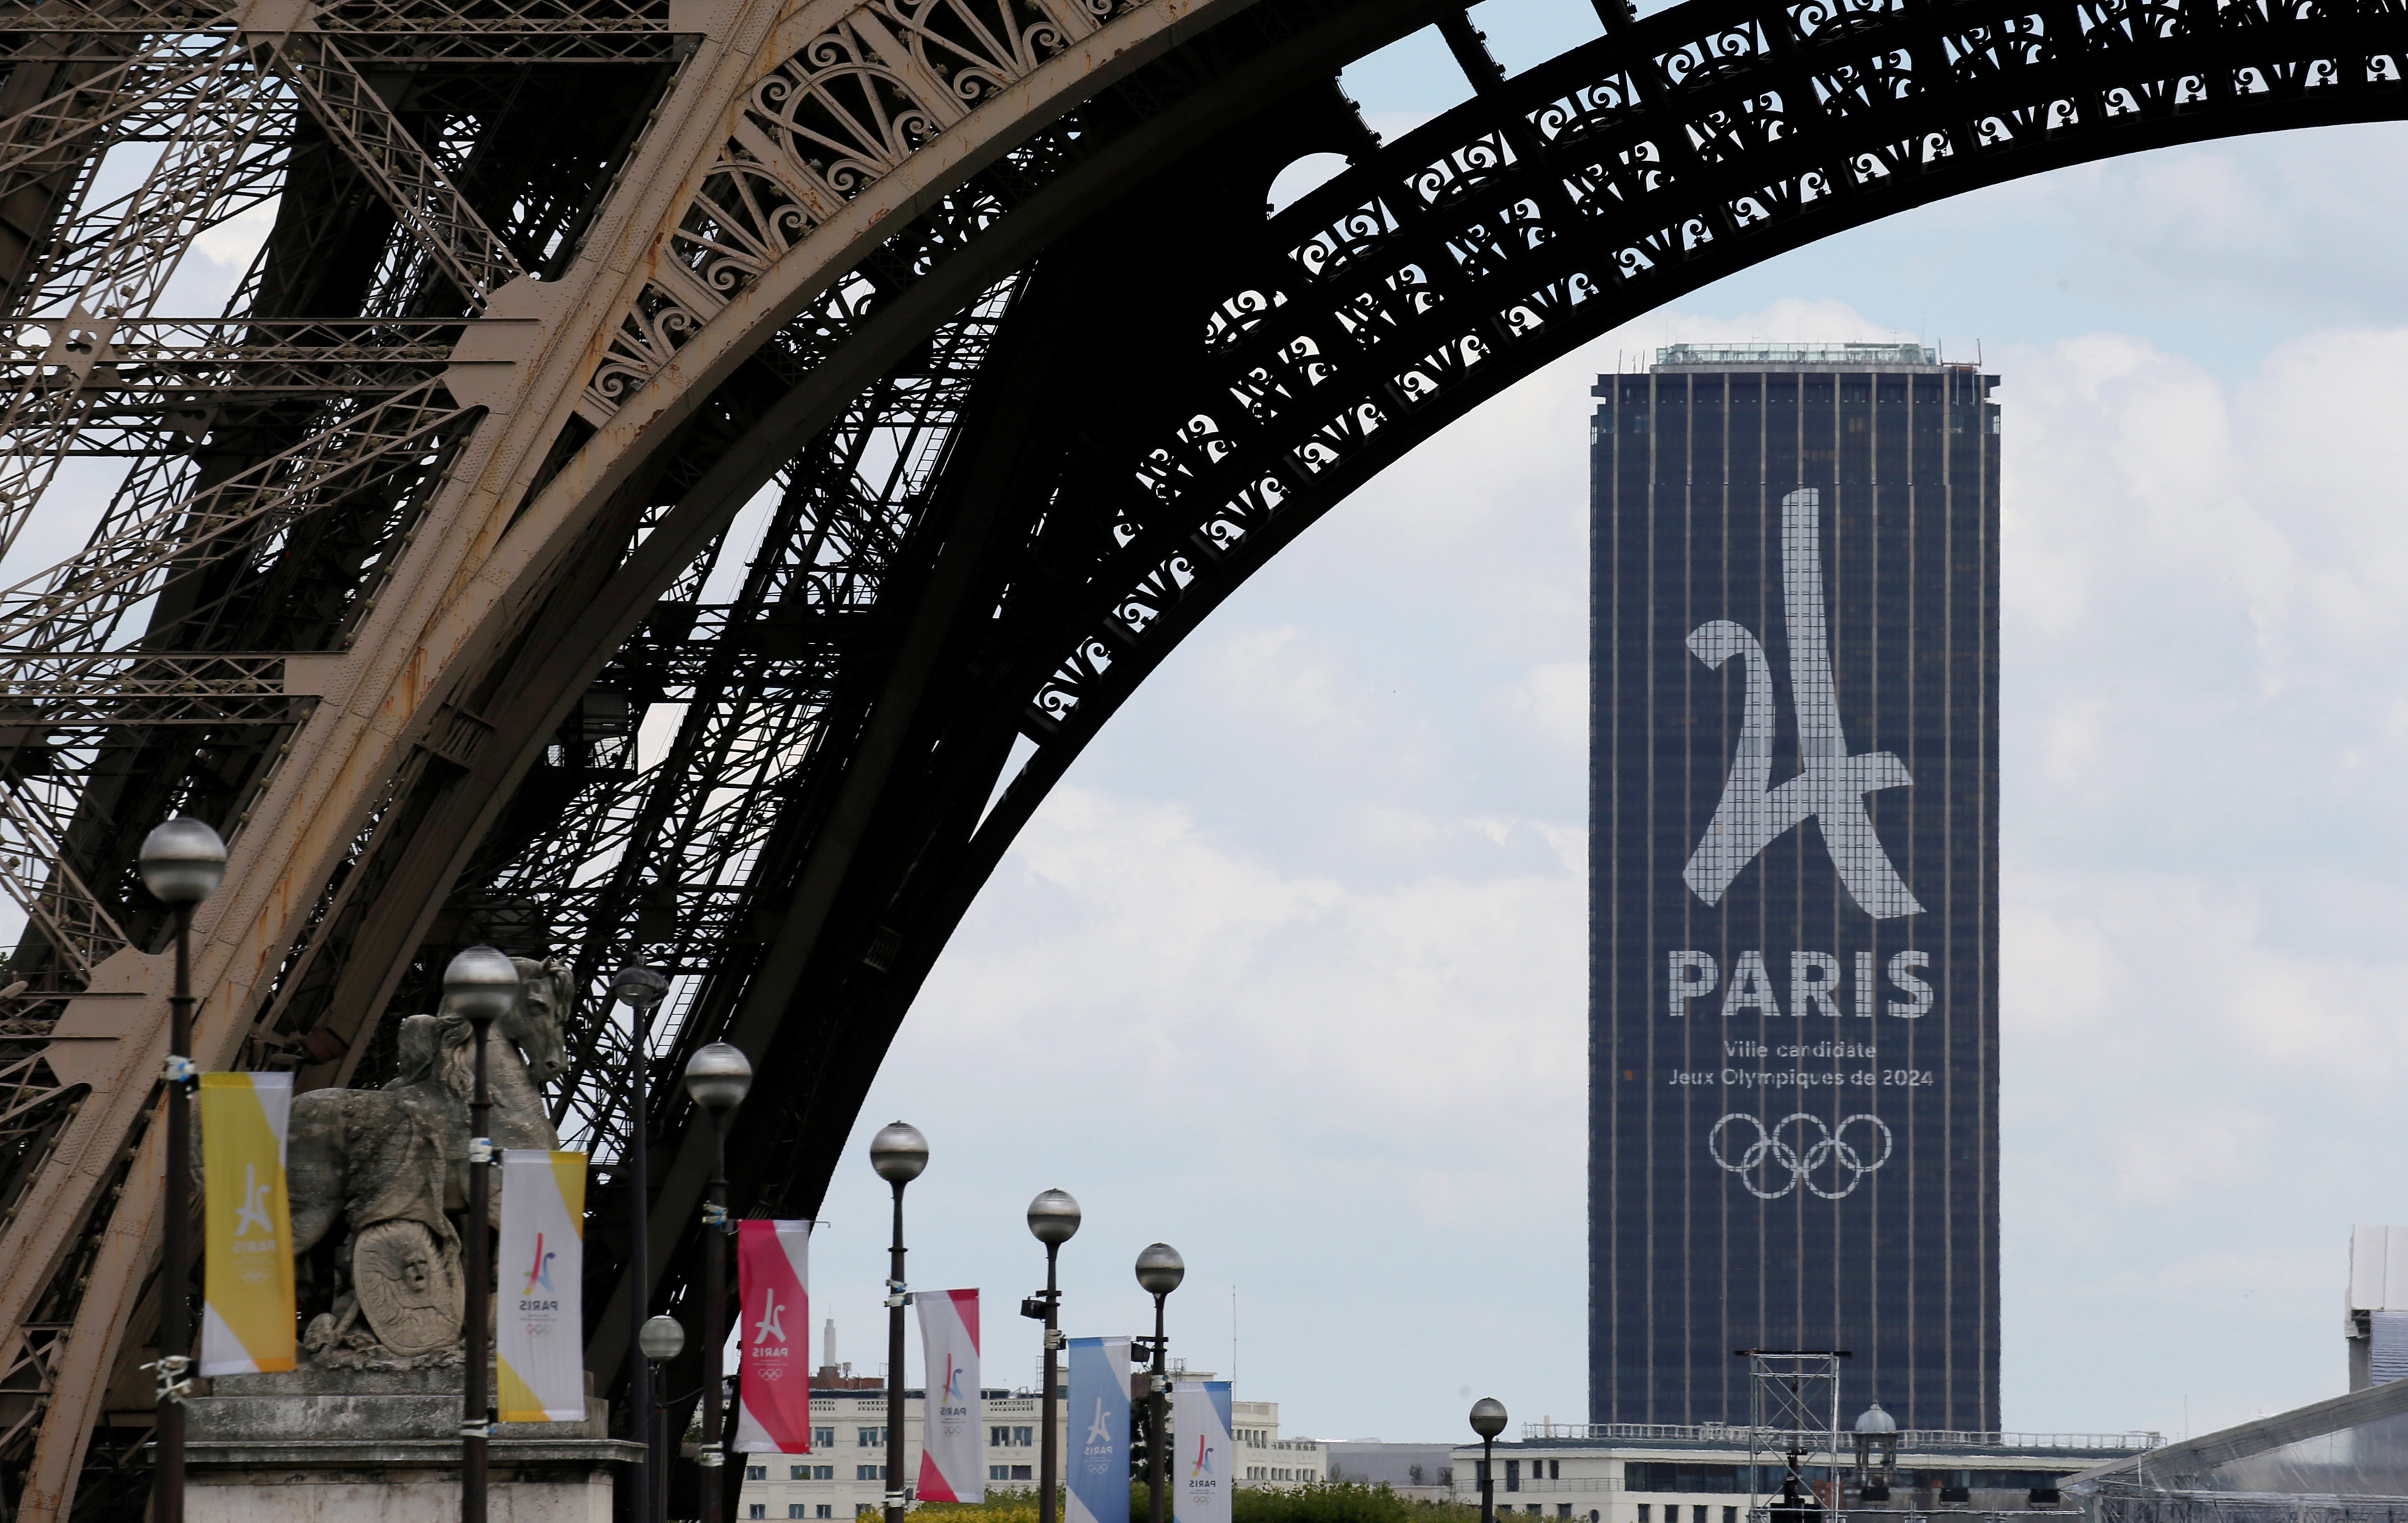 FILE - The logo of the Paris candidacy for the 2024 Olympic and Paralympic Games is seen on the Montparnasse tower behind the Eiffel Tower in Paris, July 11, 2017.